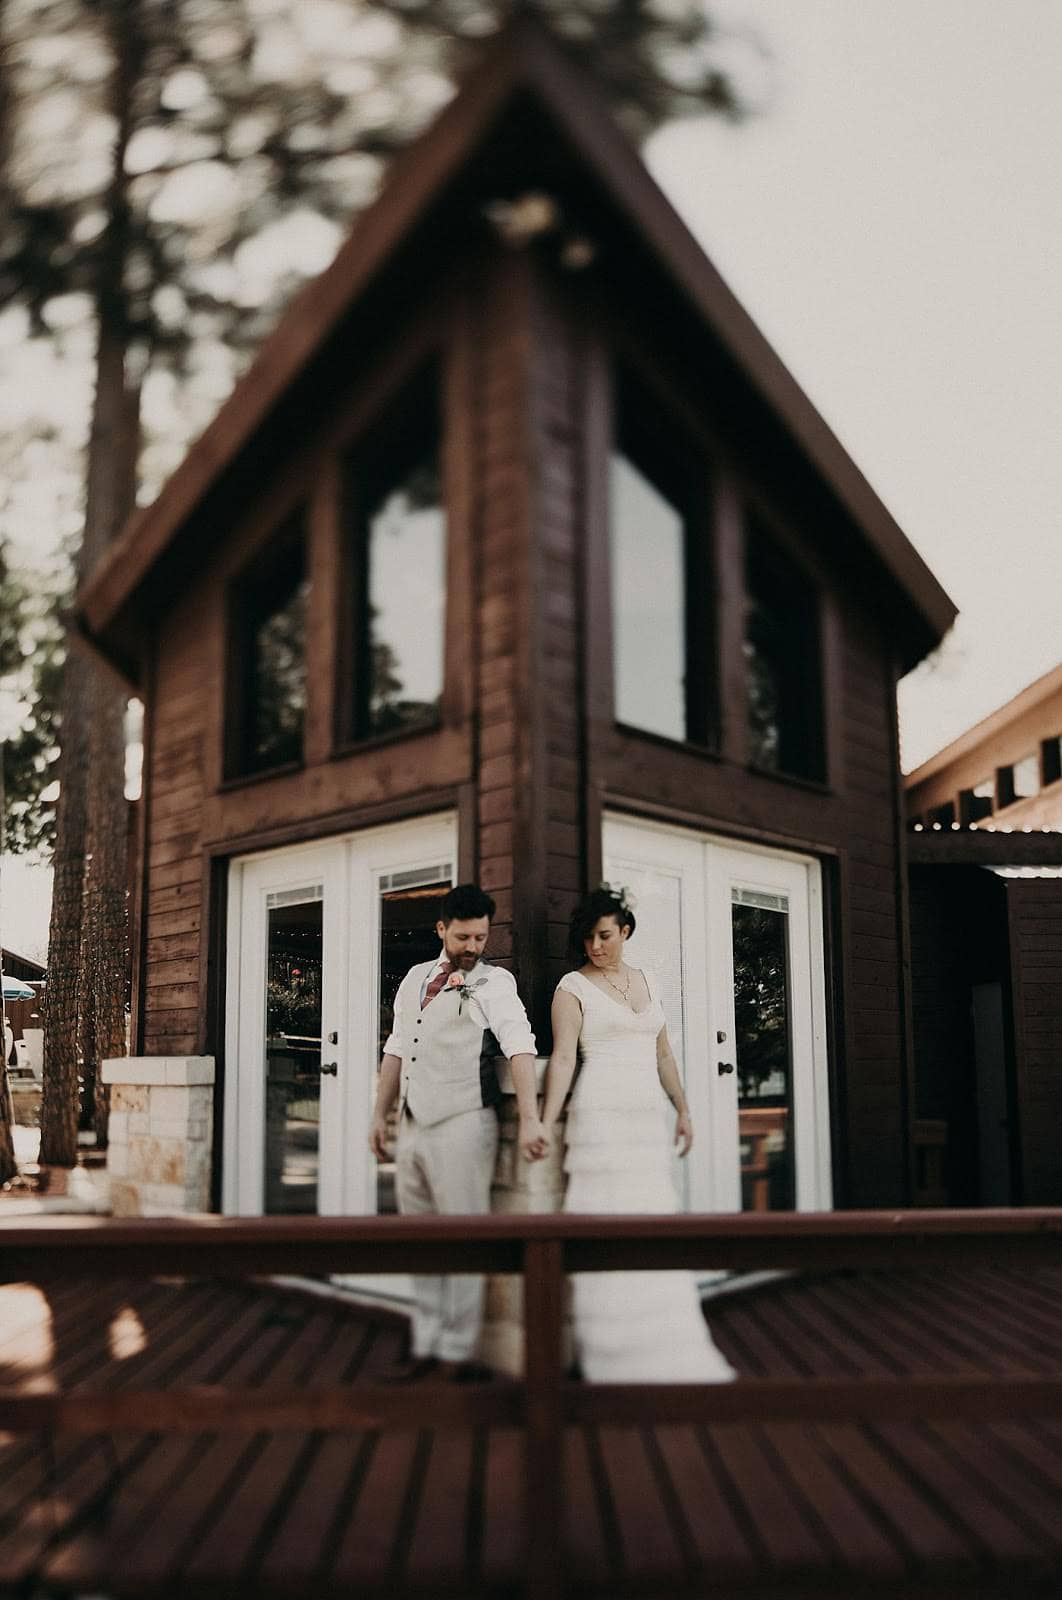 Bride and groom holding hands and looking at their intertwined hands while their backs are against adjacent walls of a dark brown lake house at Lake Buchanan outside of Austin, Texas. Photograph by Austin, Texas wedding photographer Nikk Nguyen.